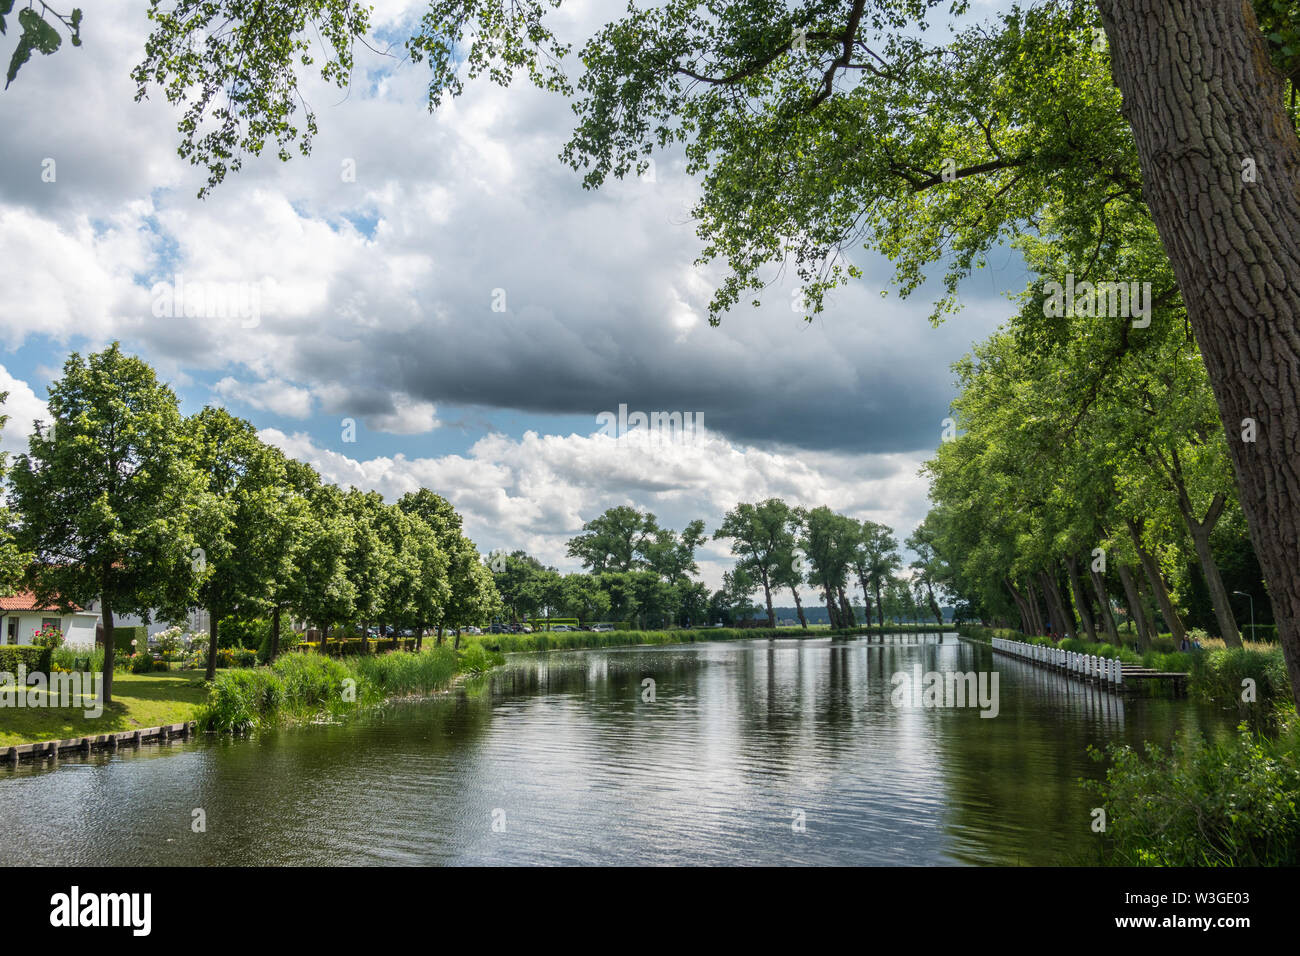 Sluis, the Netherlands -  June 16, 2019: Reflecting water of canal to Damme in Belgium, with curtains of green trees on sides, under a storm approachi - Stock Image